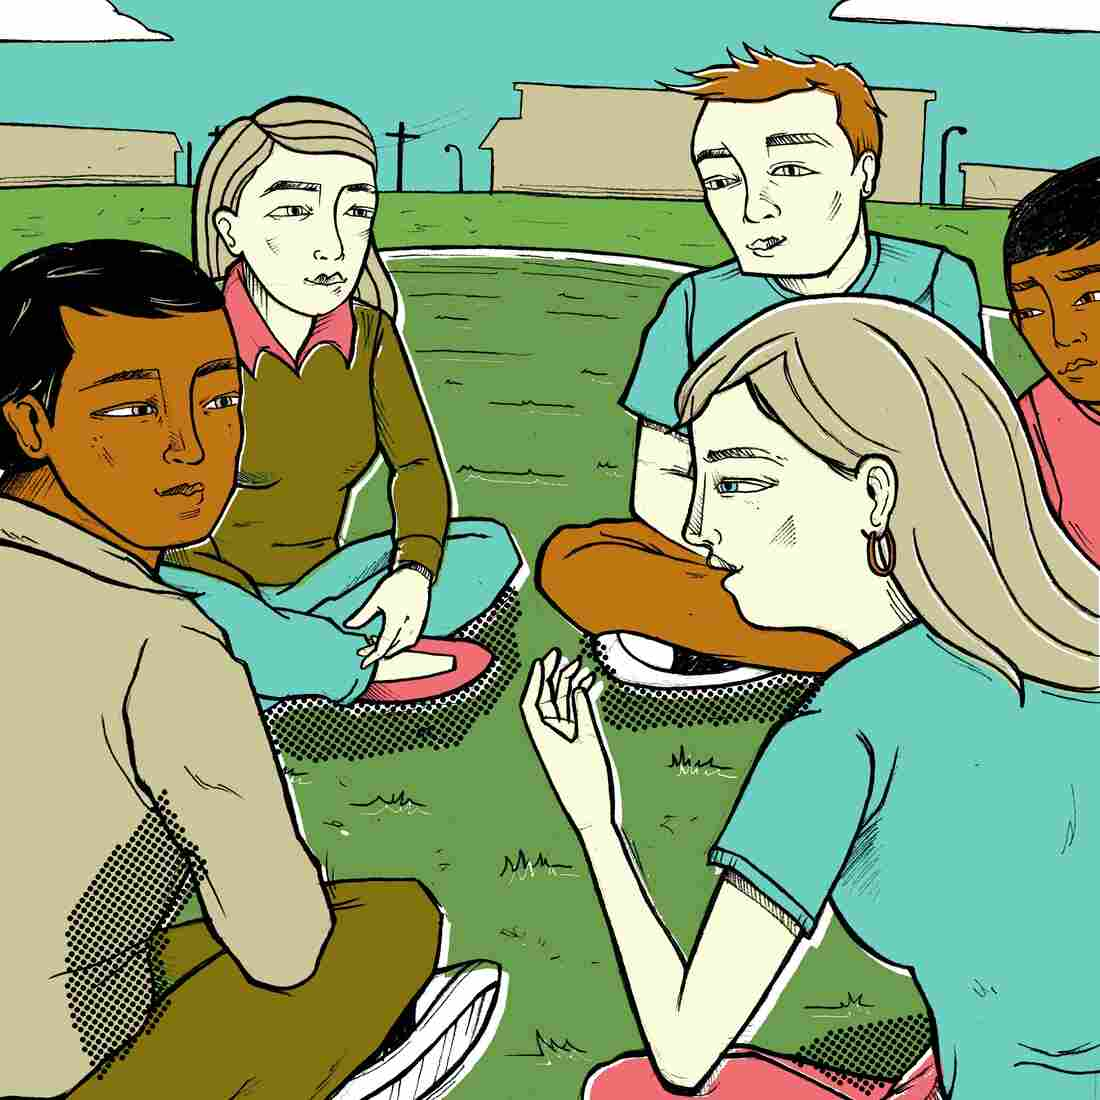 Hearing from older students that high school gets better may help teenagers avoid depression.